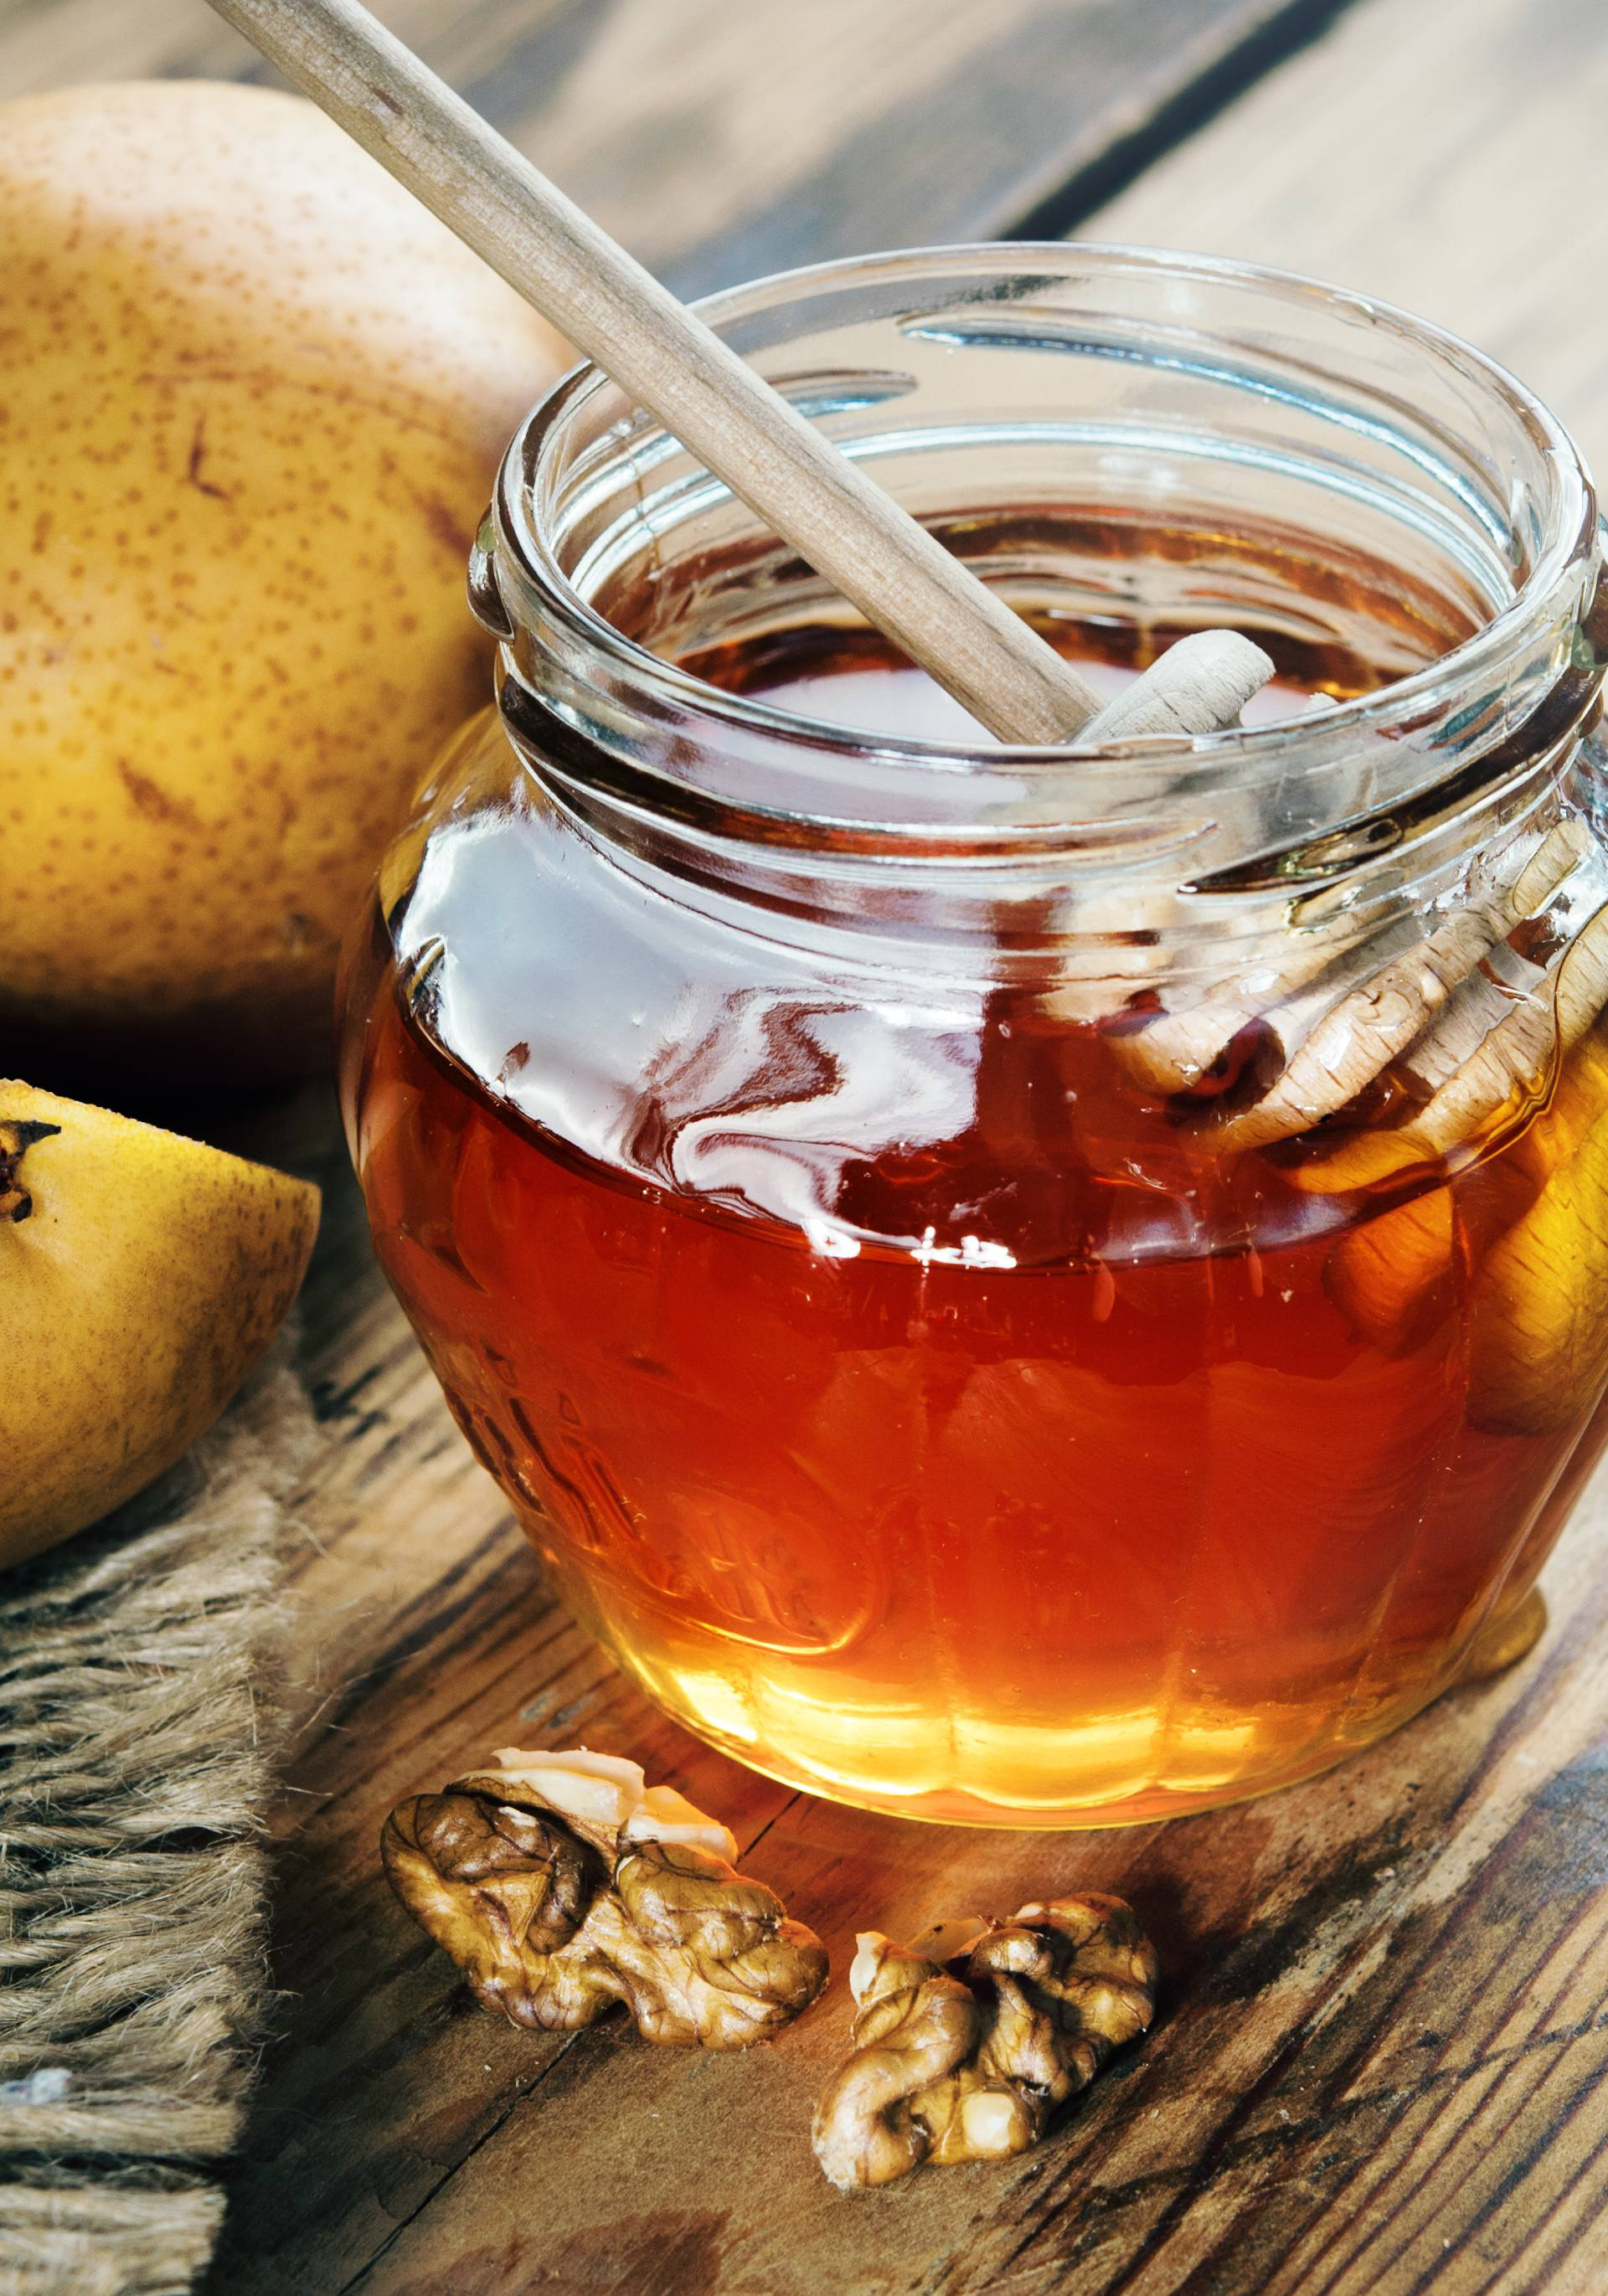 Jar of honey on a wooden table with walnuts and fruit